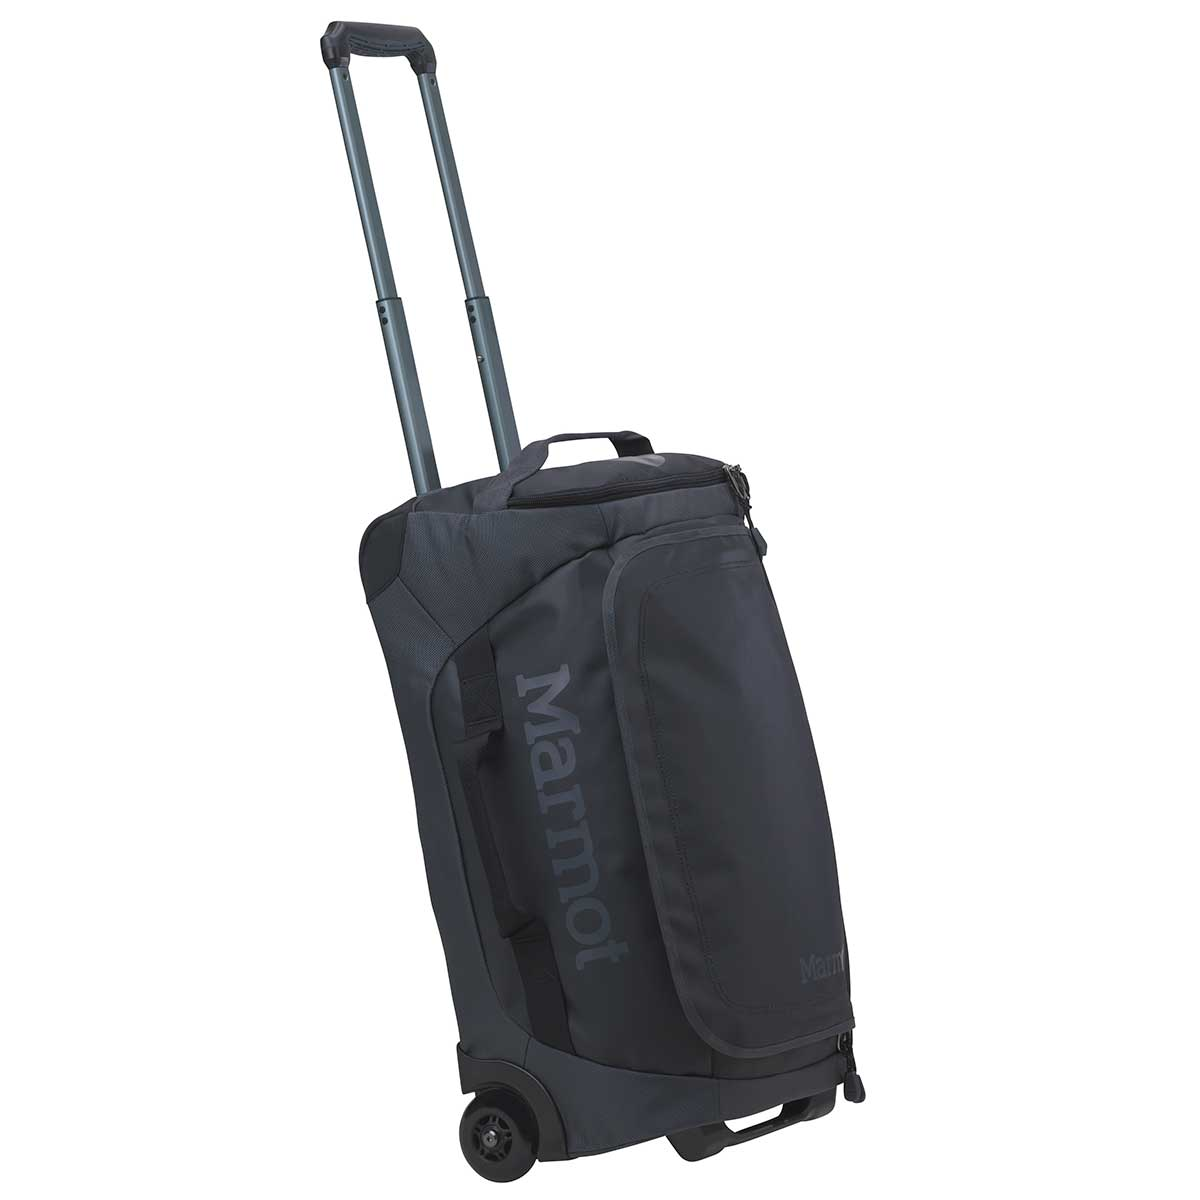 Marmot Rolling Hauler Carry On in Slate Grey and Black